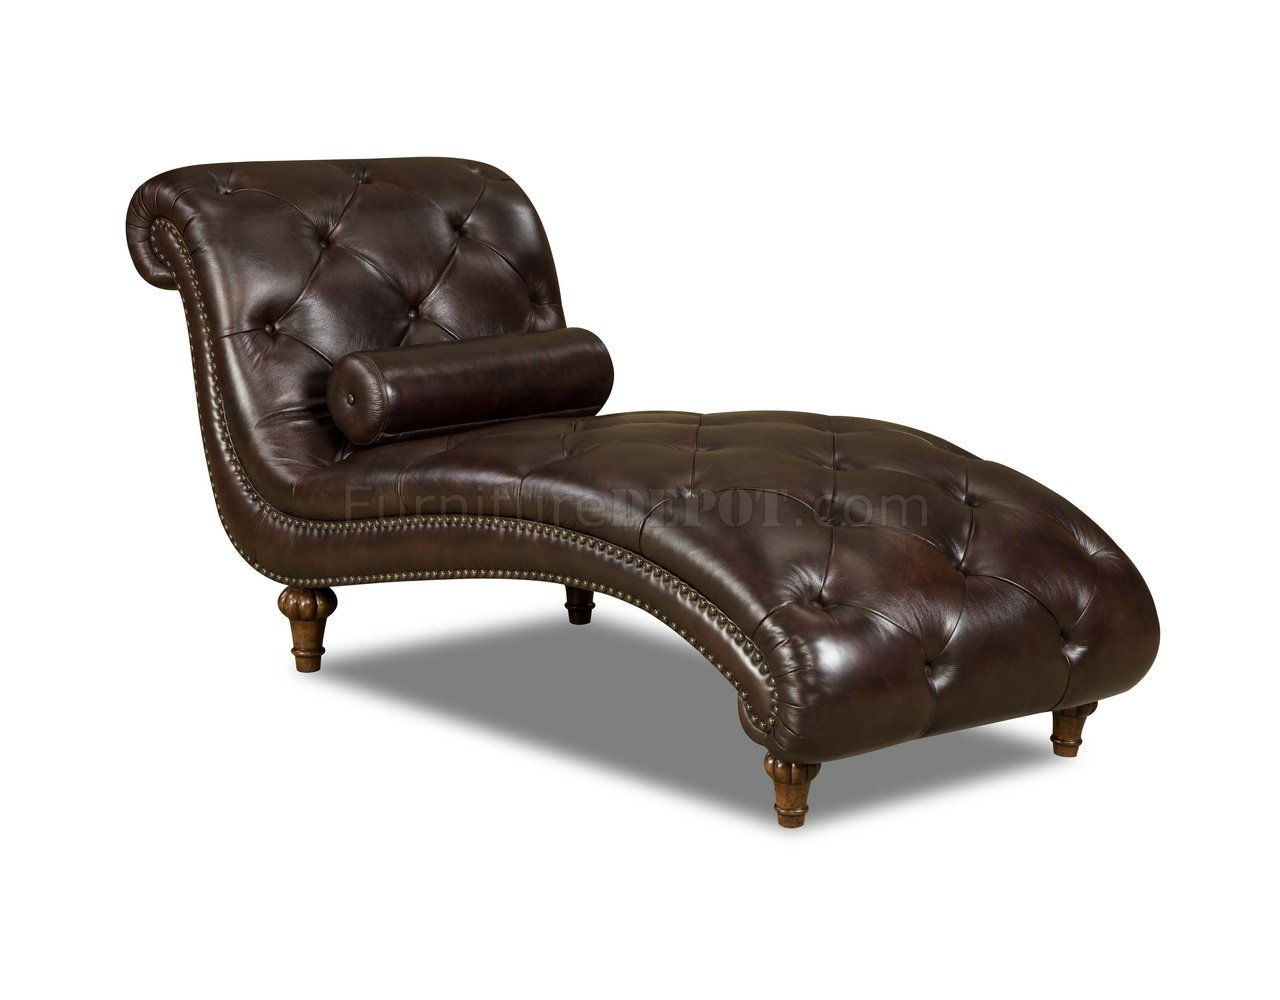 rich brown top grain tufted leather traditional chaise lounge